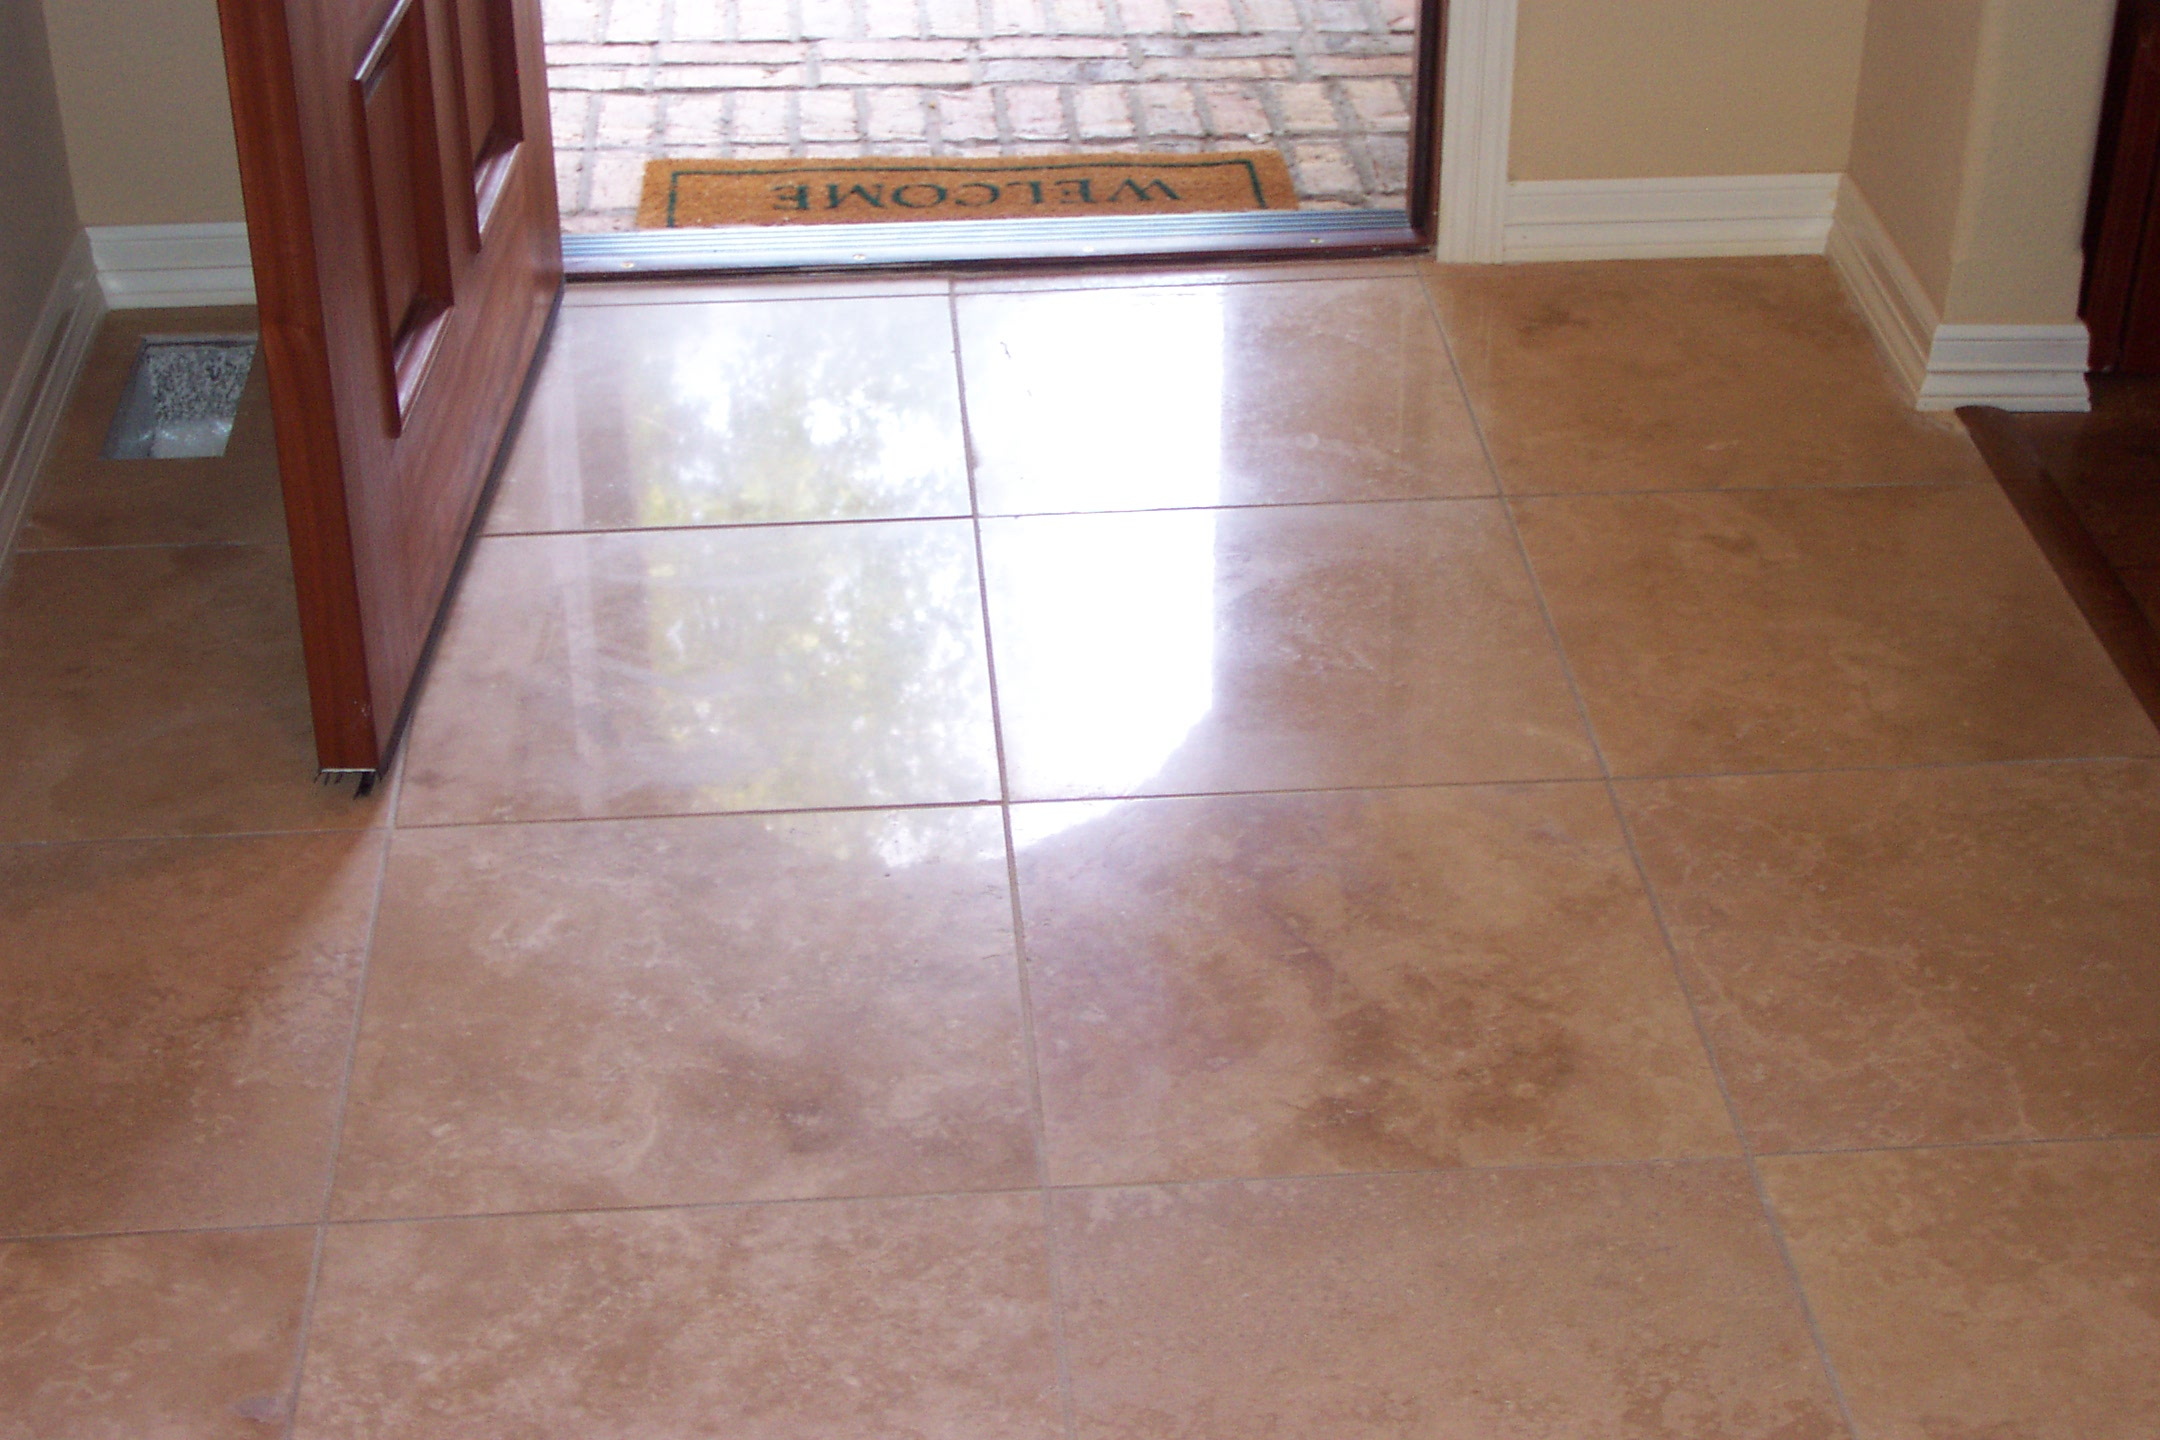 Polished Travertine Floors Can Be To A Stain Semi Gloss Or High Finish Depend On The Stone And Possible Obtainable Desired